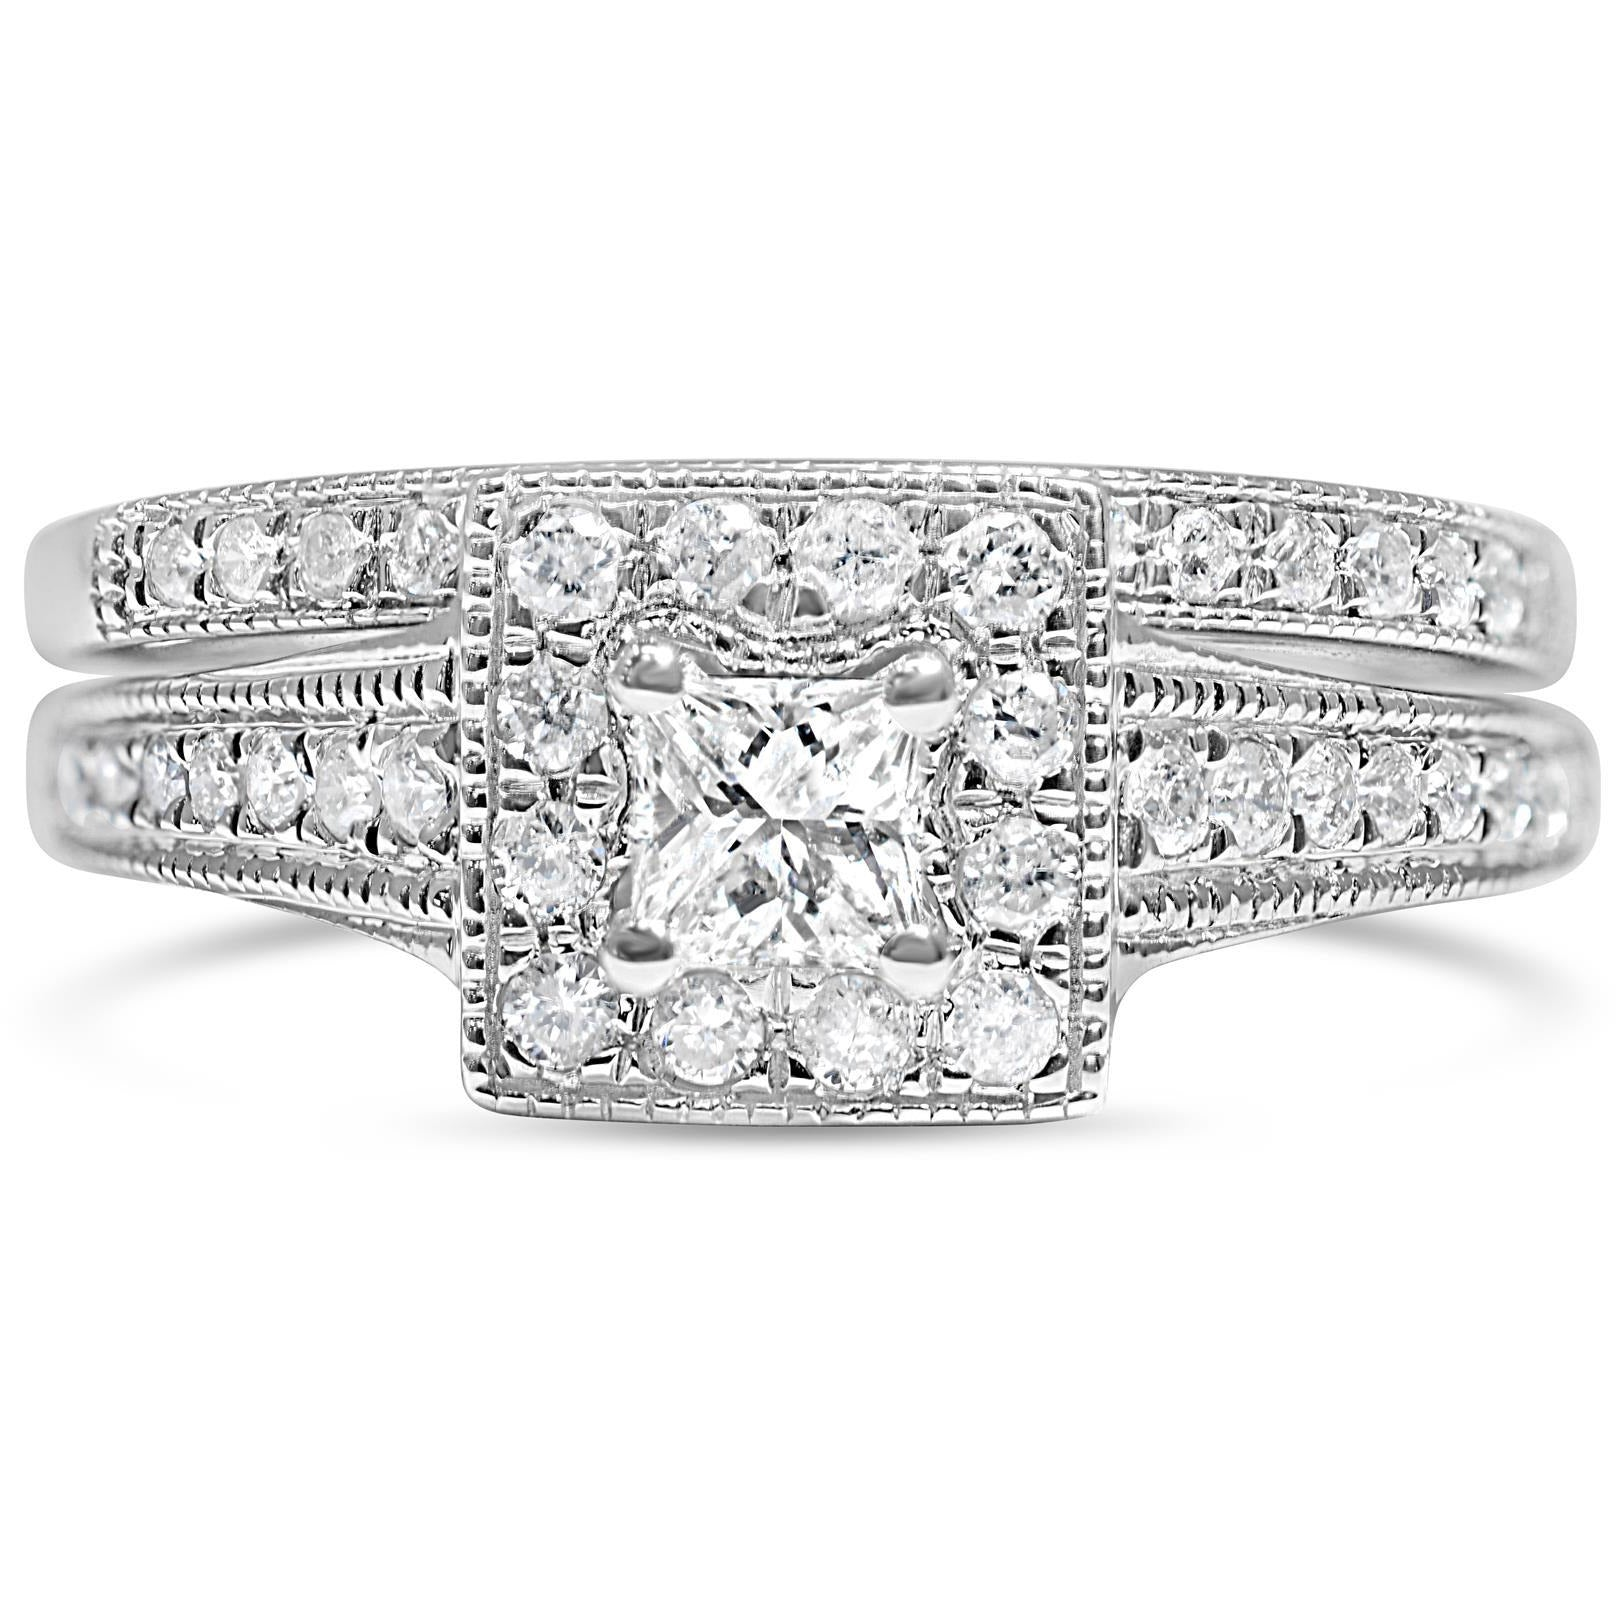 Bridal Set Of Princess cut Diamond Engagement and Wedding Ring in White Gold